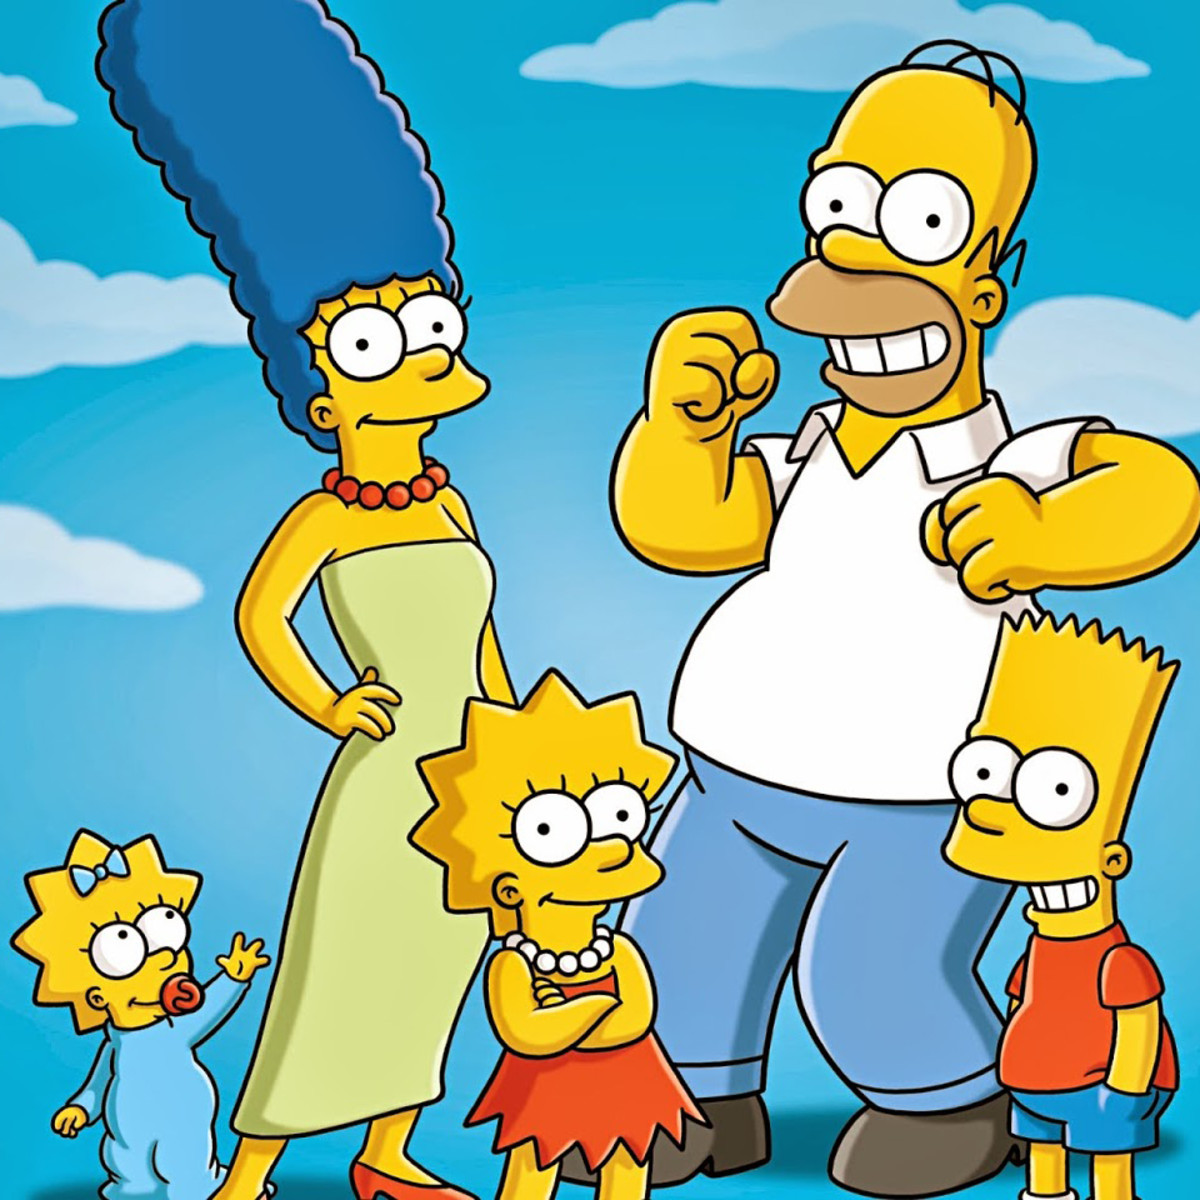 The Simpsons family, as they appear in the animated series.